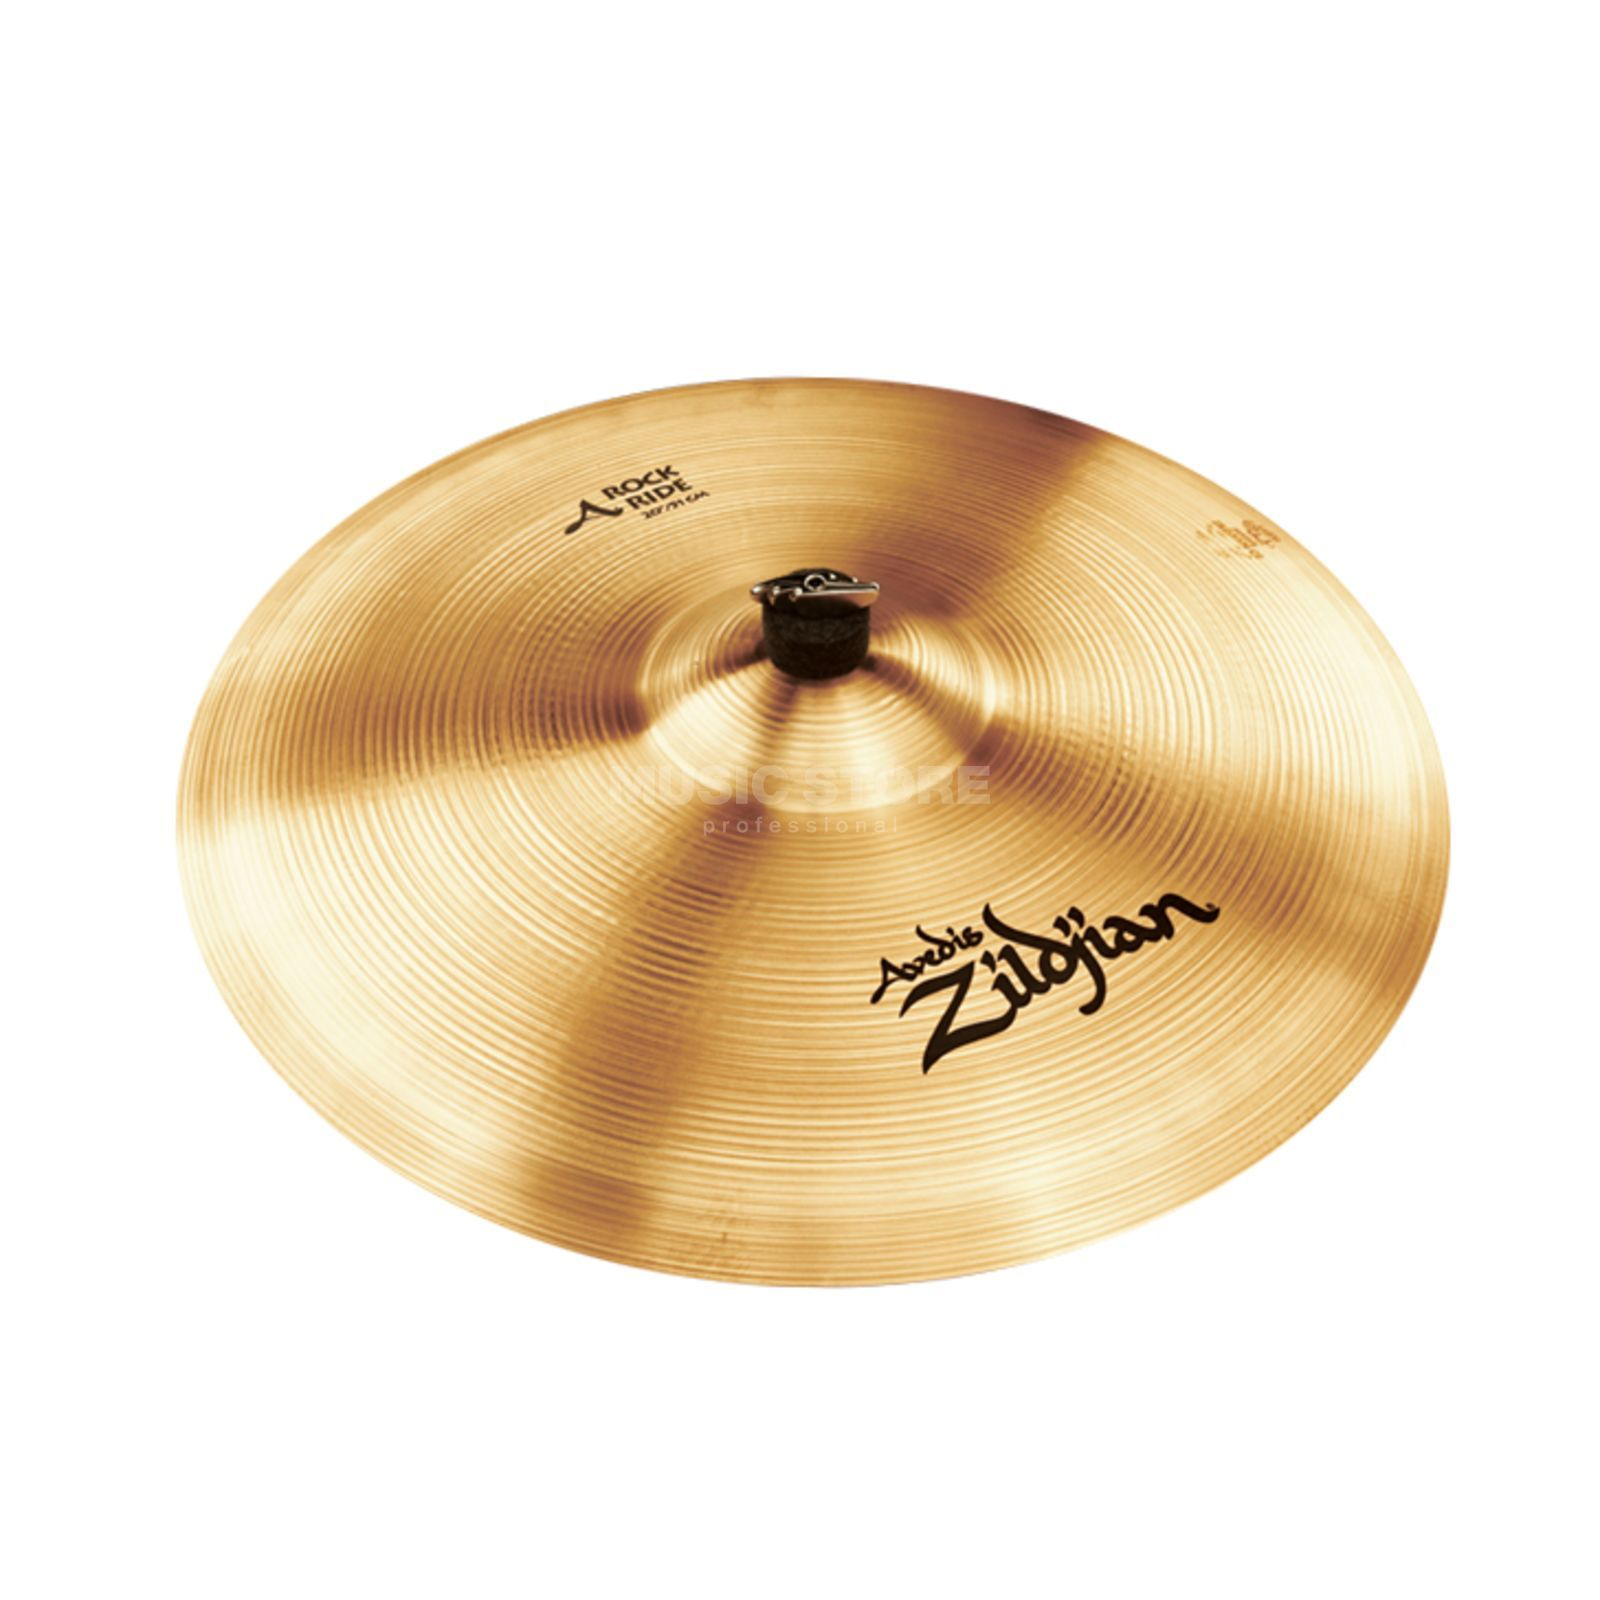 "Zildjian A' Zildjian Rock Ride 20"", Traditional Finish Produktbild"